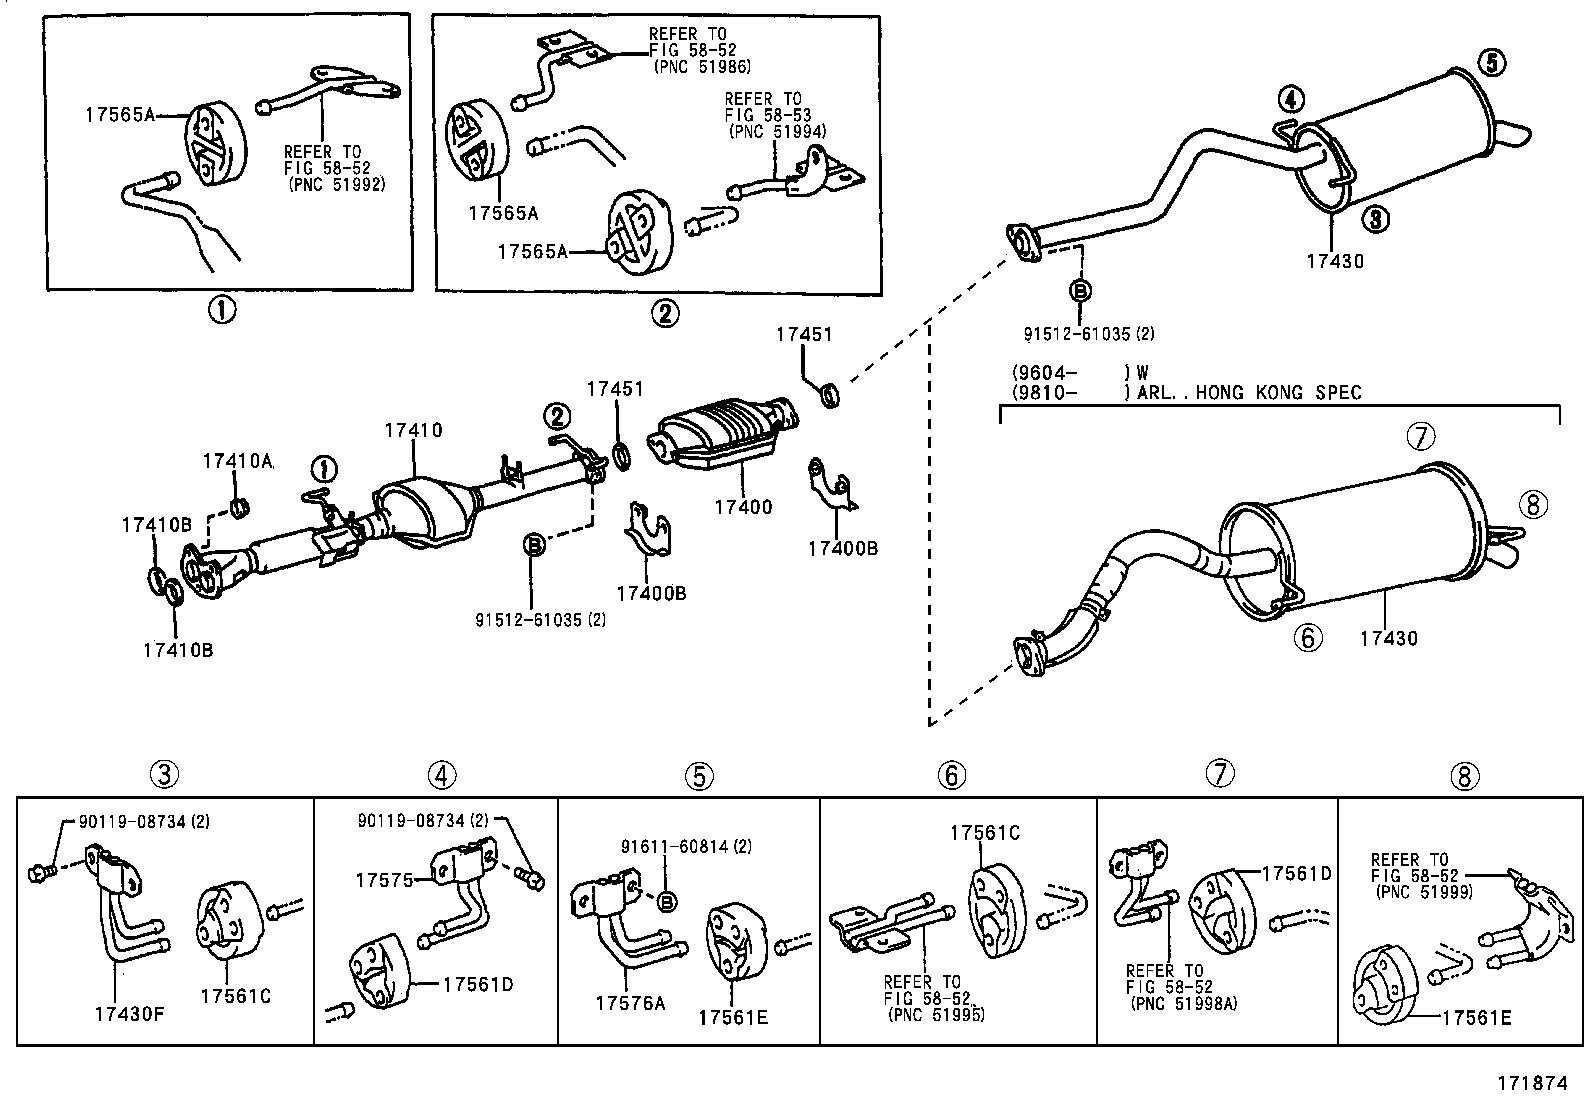 2003 Toyota Corolla Exhaust System Diagram Trusted Wiring Diagrams For Tundra Of Previa 2002